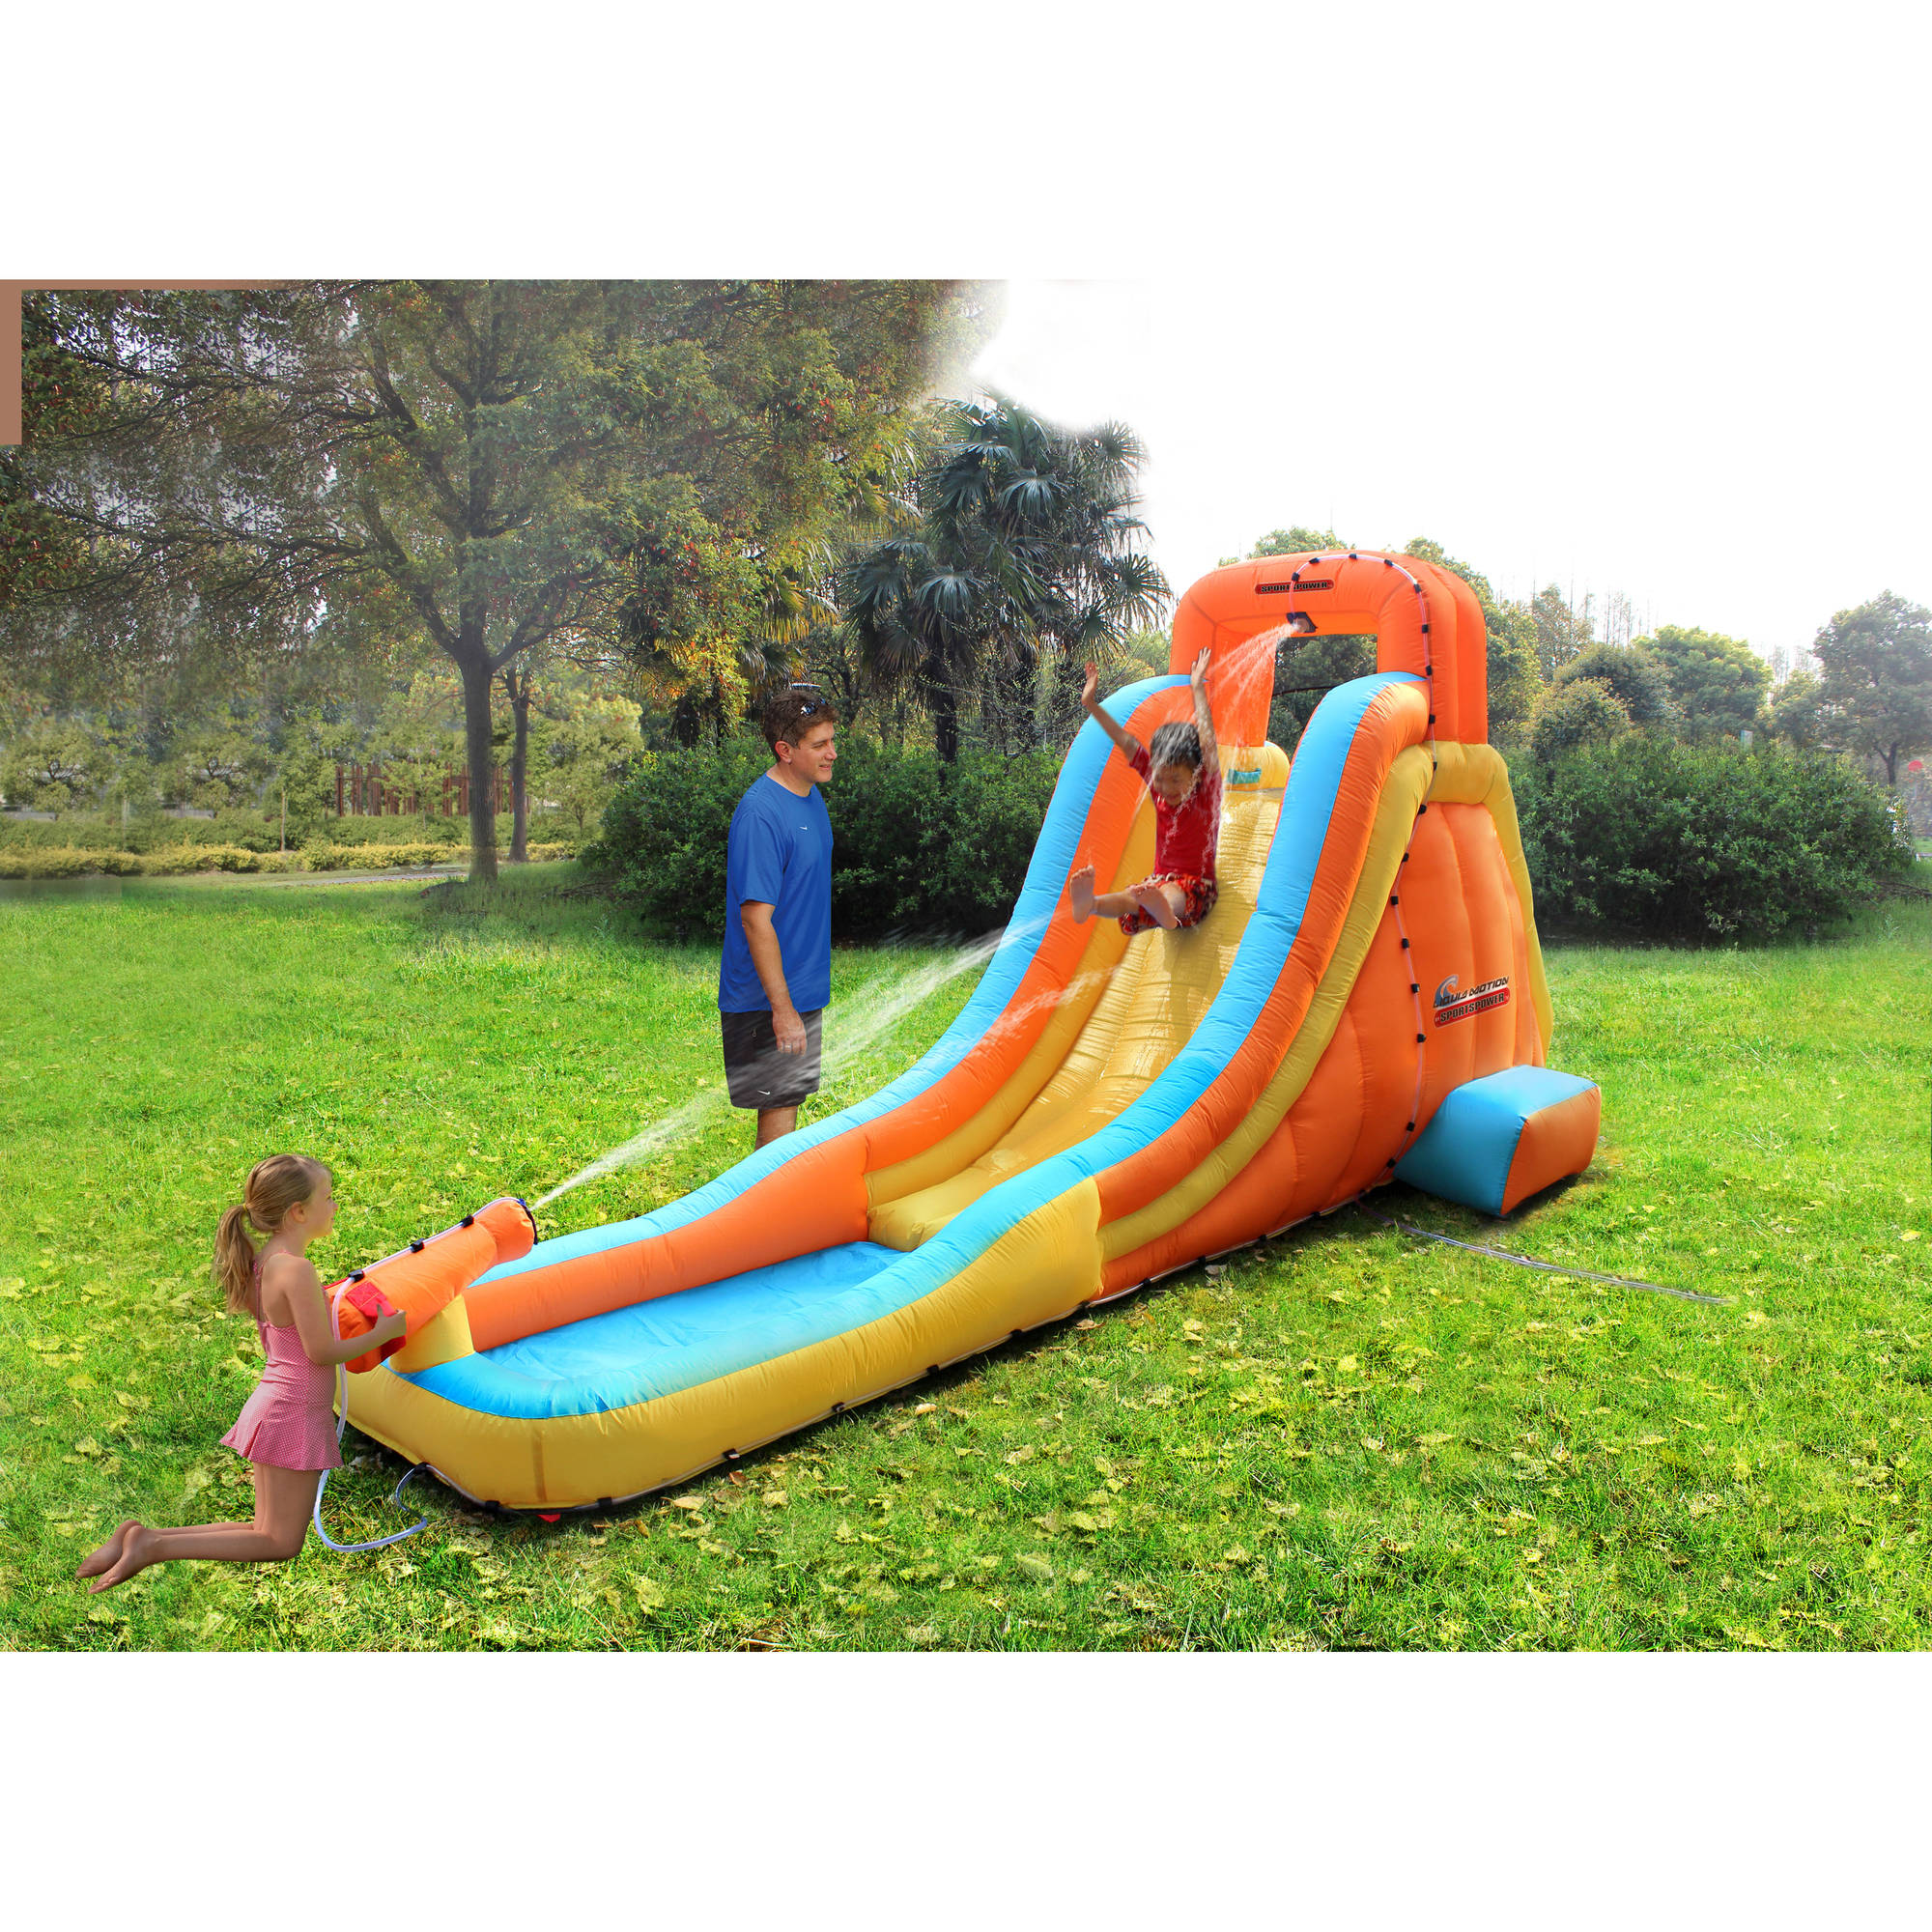 Backyard Waterslide waterslides - walmart